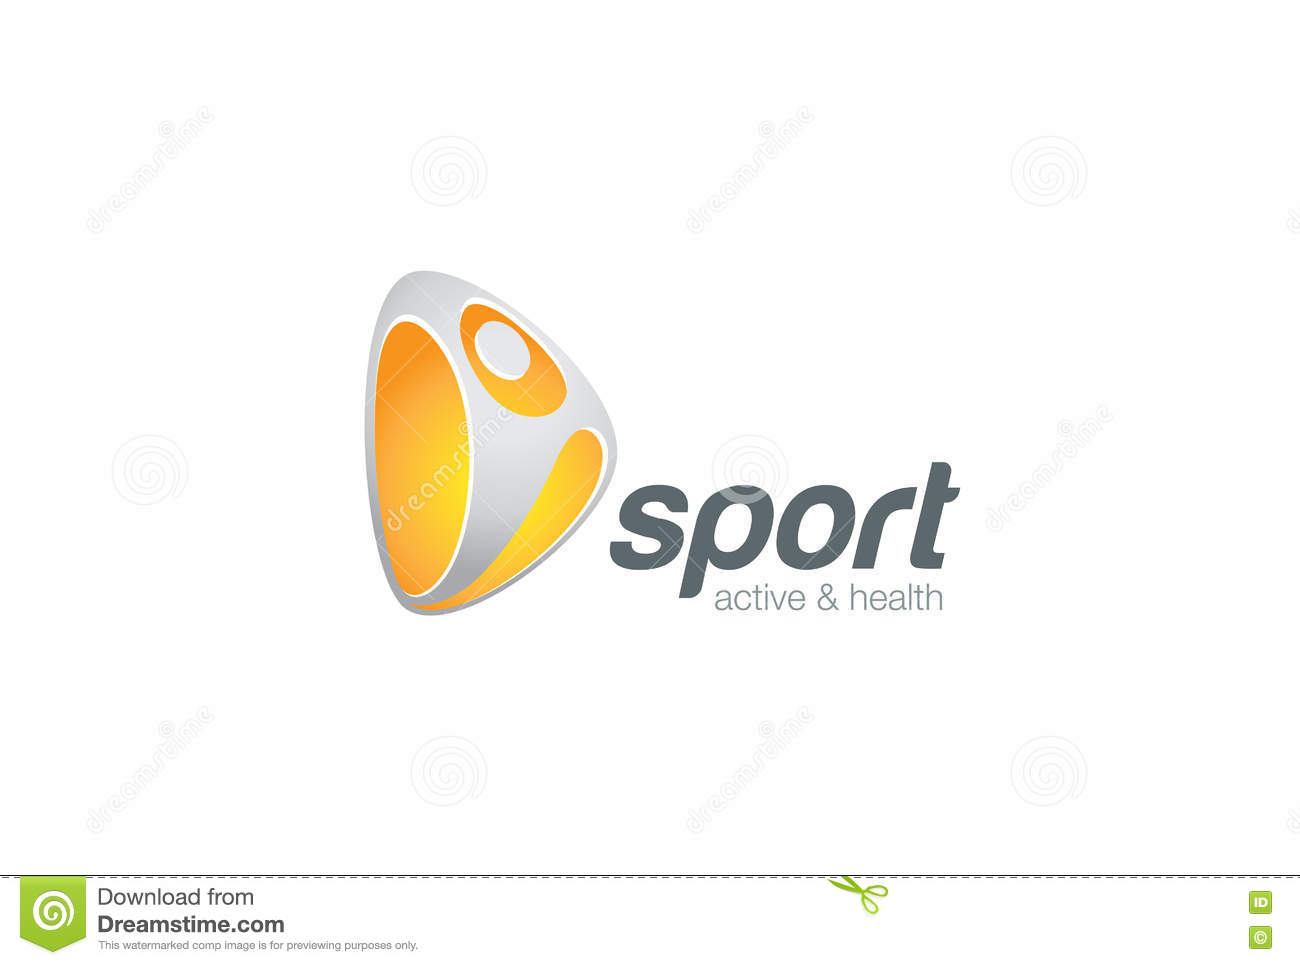 sport fitness active logo emblem character design stock illustration